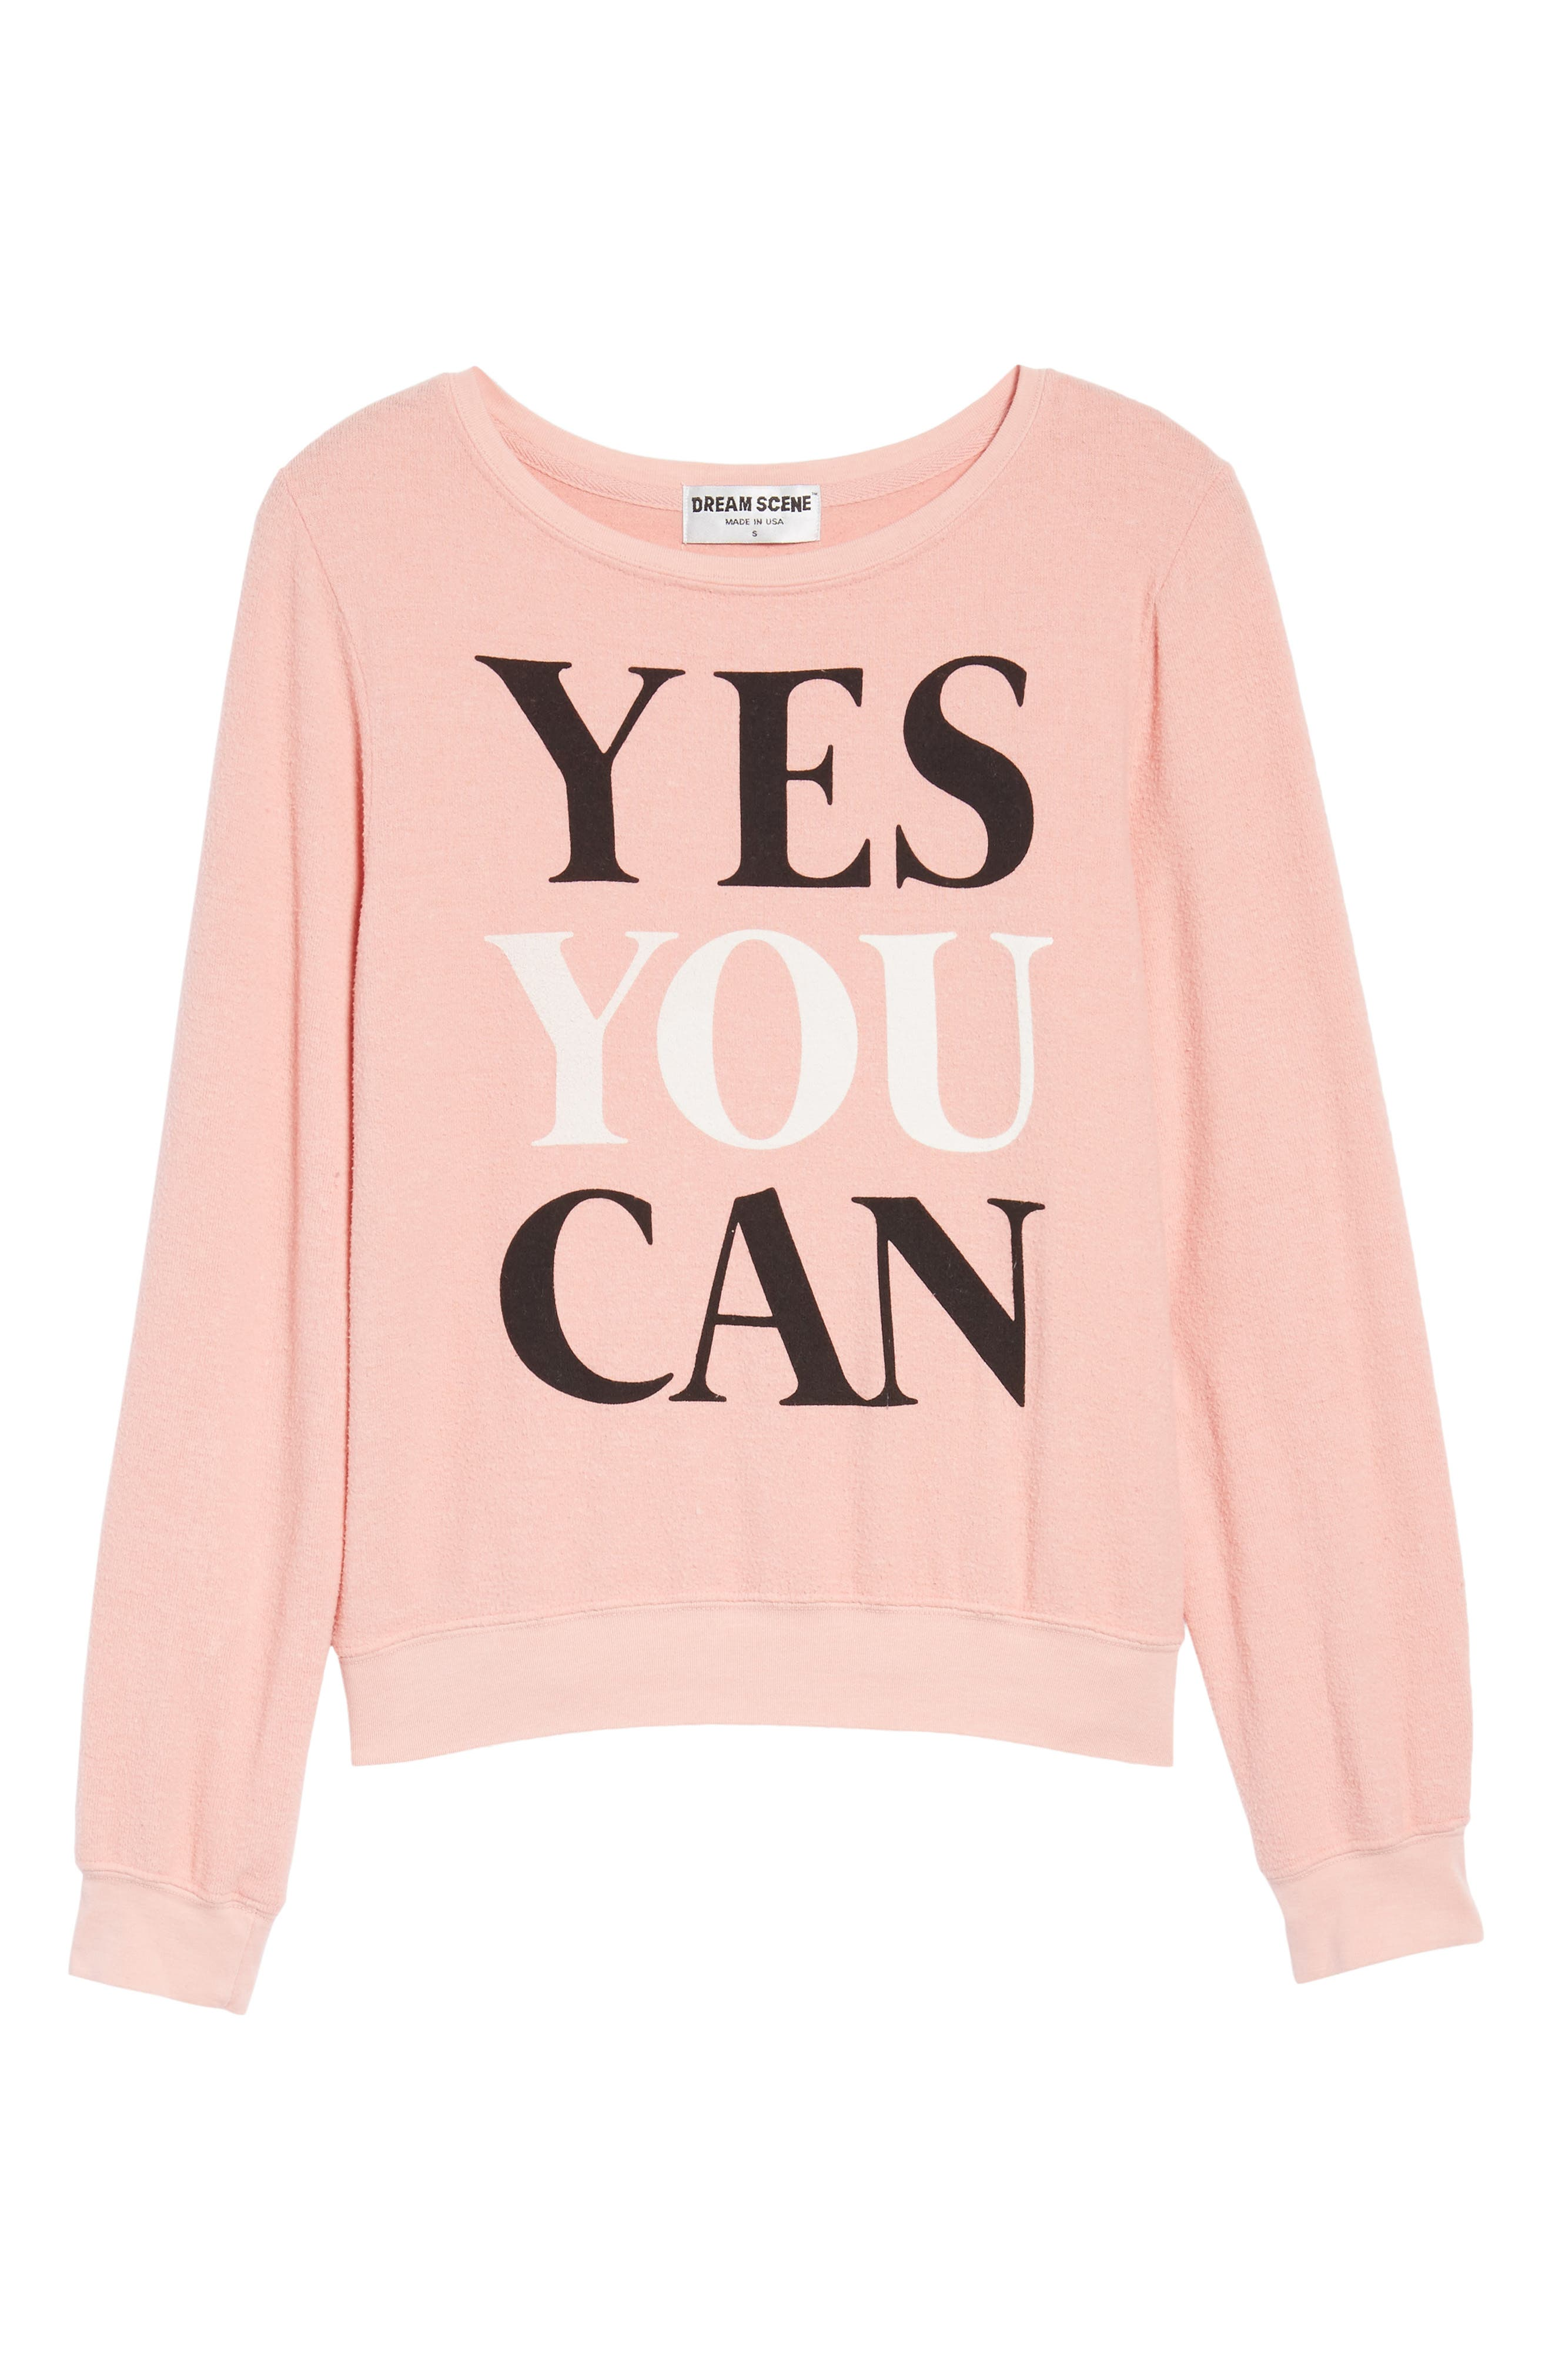 Yes You Can Sweatshirt,                             Alternate thumbnail 6, color,                             Peony